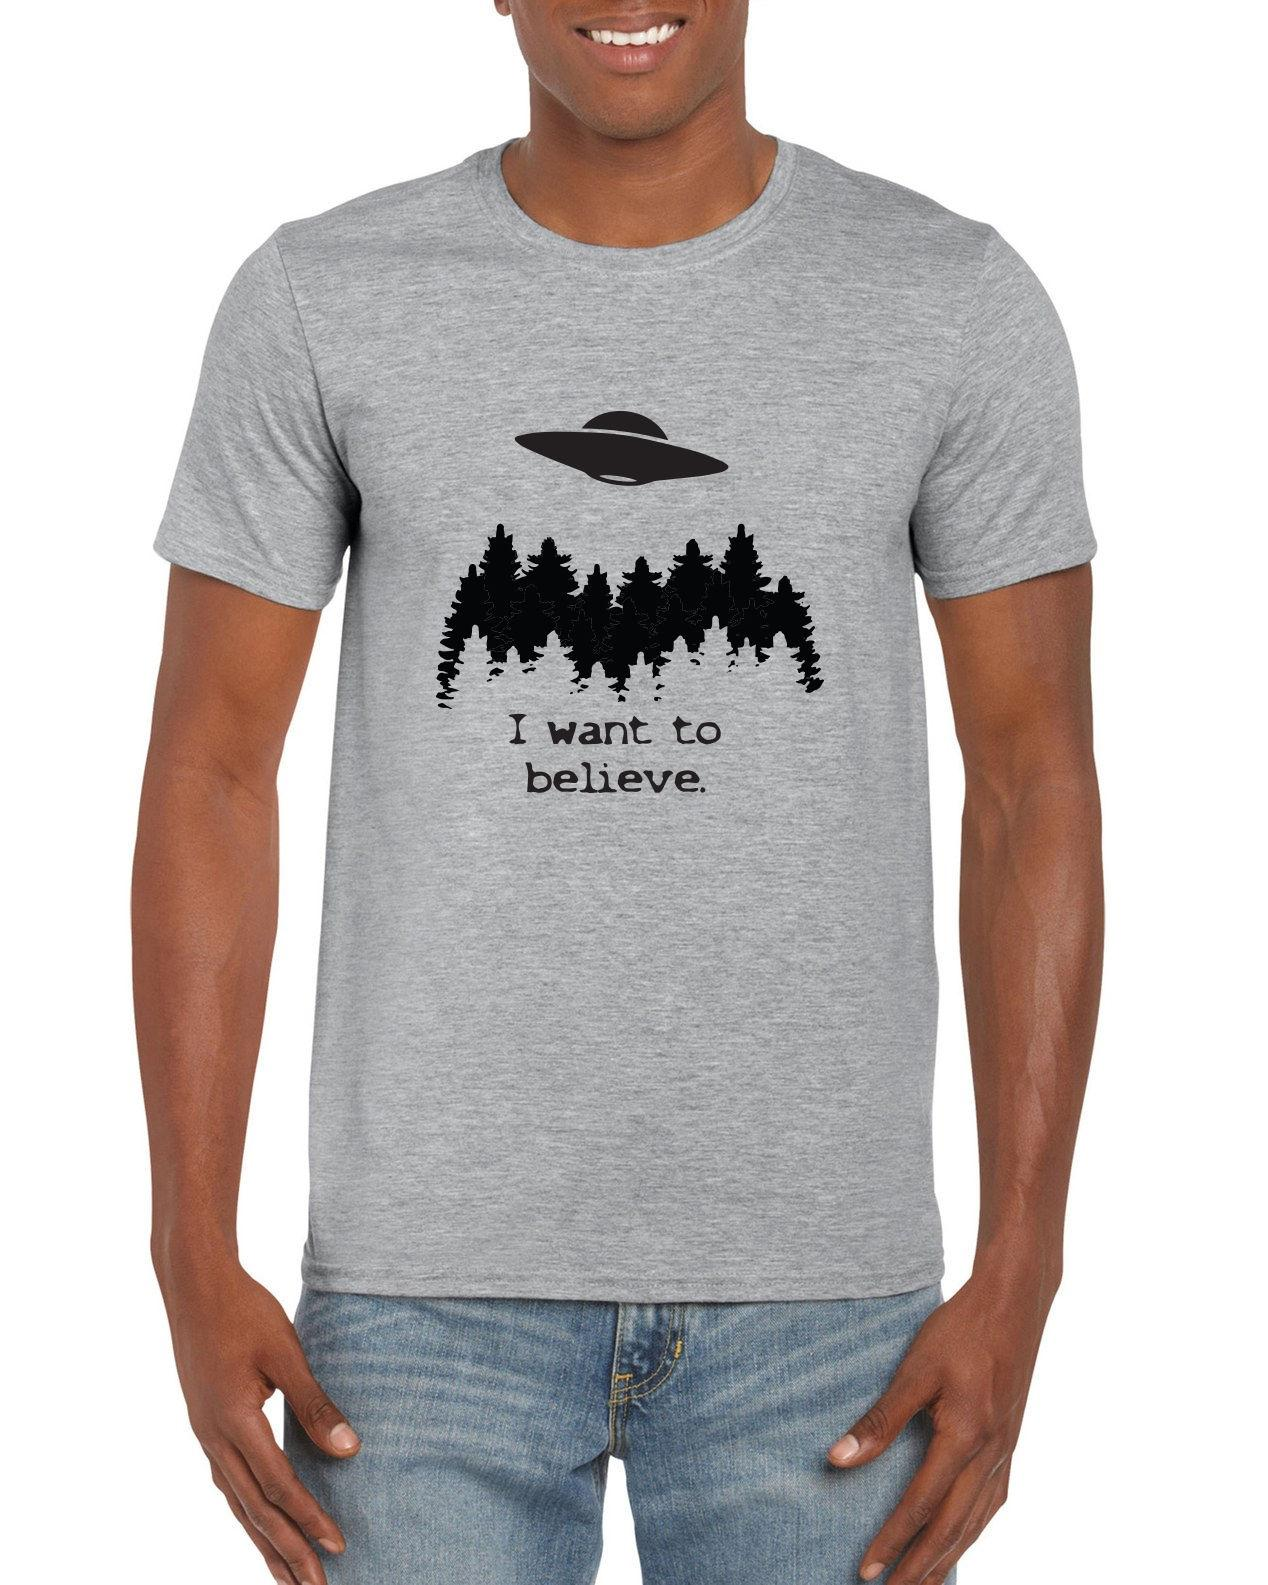 I Want To Believe in UFO/'s T-Shirt-Funny Humorous Novelty Shirt Tee Shirt